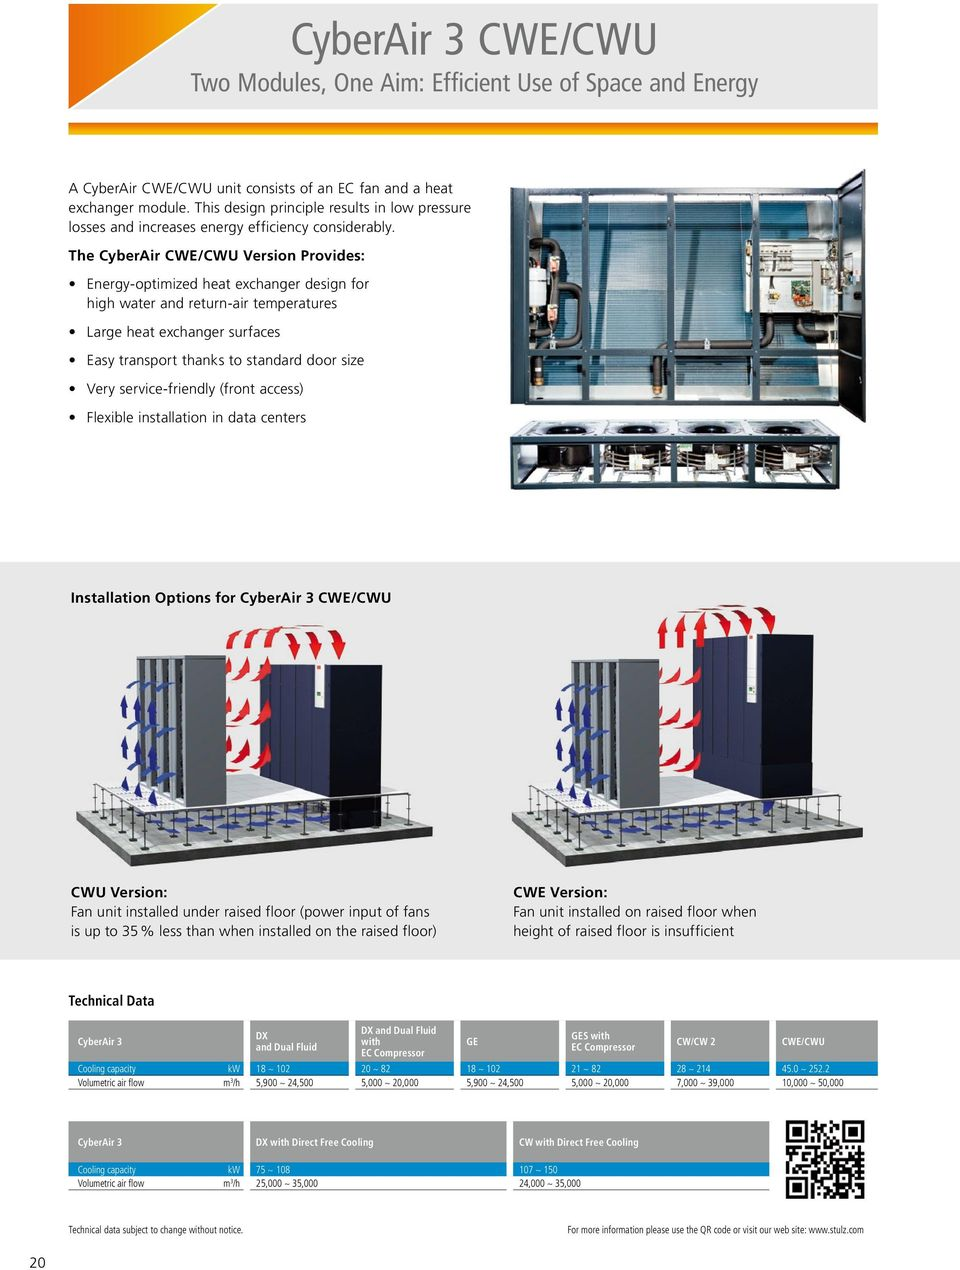 The CyberAir CWE/CWU Version Provides: Energy-optimized heat exchanger design for high water and return-air temperatures Large heat exchanger surfaces Easy transport thanks to standard door size Very